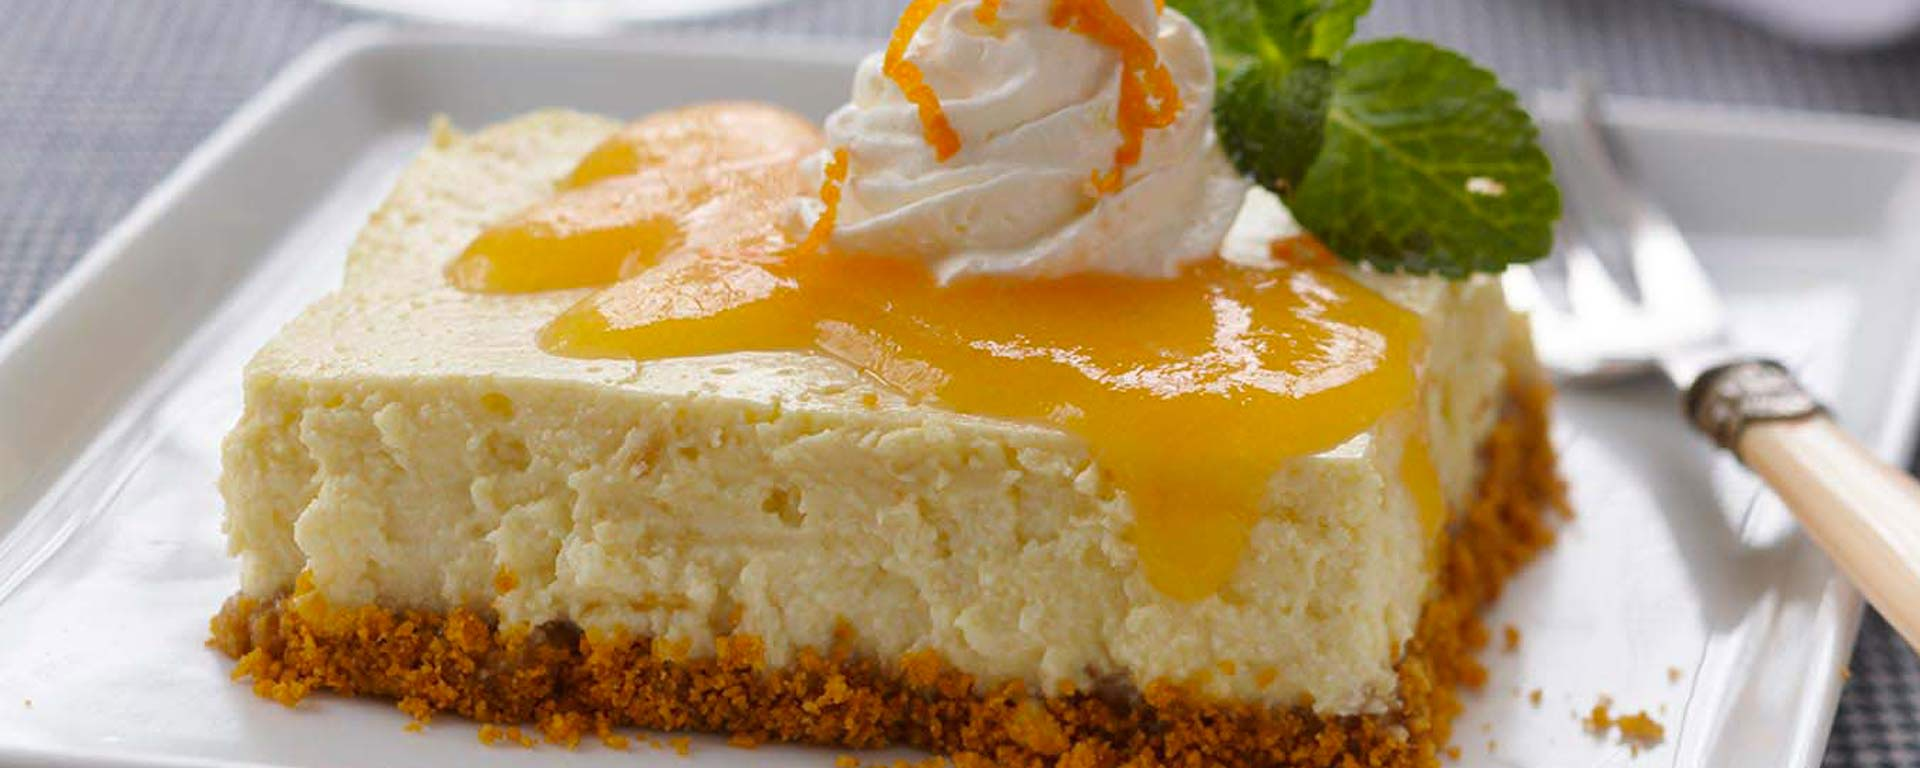 Photo for - Peach Ginger Cheesecake Bars